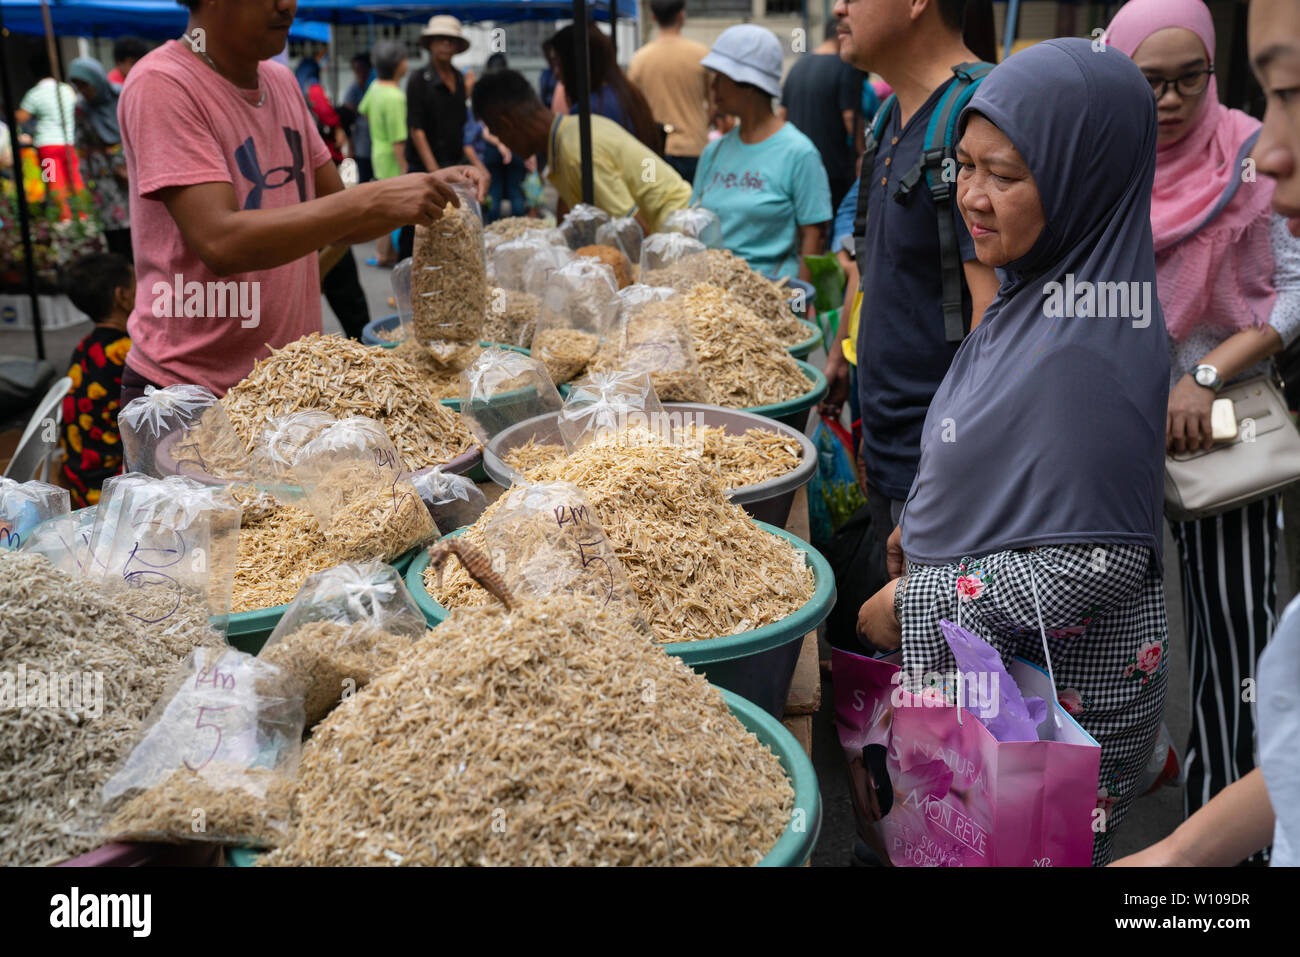 KOTA KINABULU, BORNEO - JUNE 2  Dried fish seller in Kota Kinabalu Gaya Street Sunday market packs product for buyer and hands it over. - Stock Image